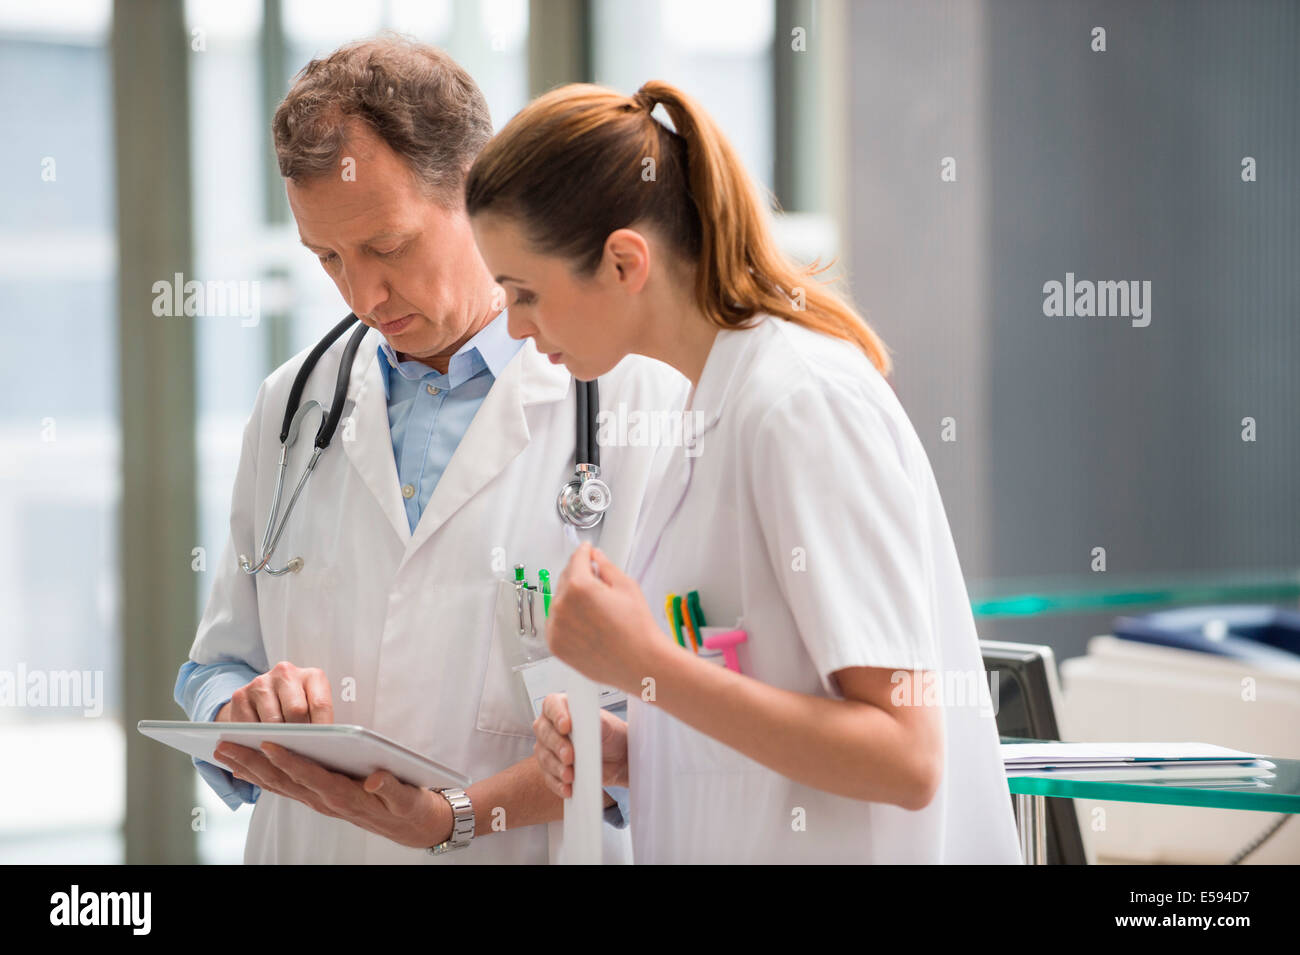 Two doctors analyzing medical report on digital tablet in hospital - Stock Image